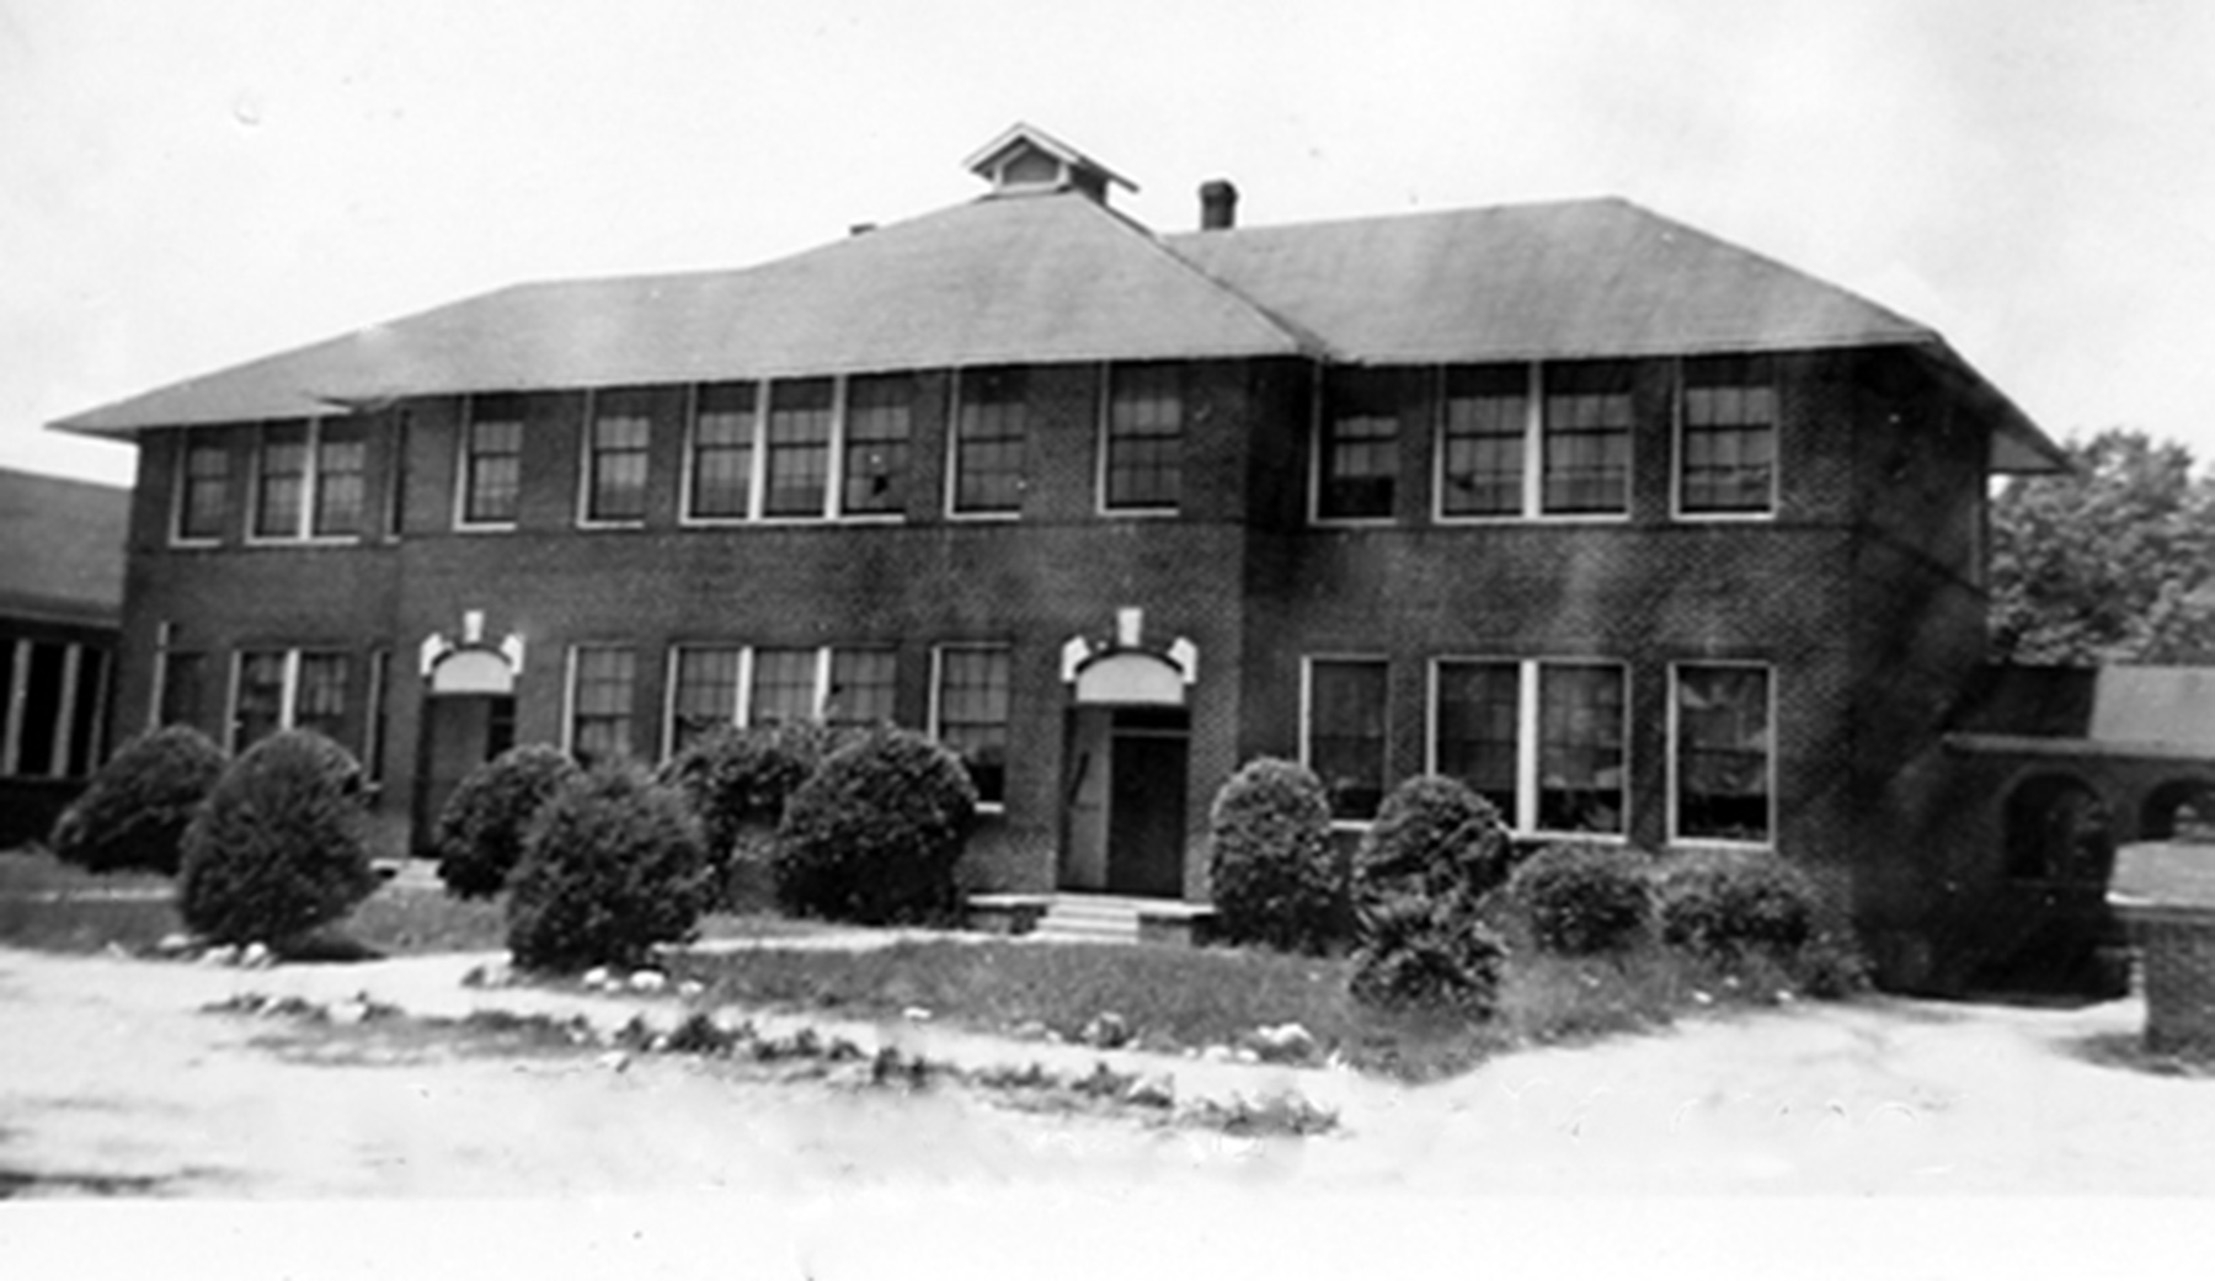 Blythewood School about 1932. Photo courtesy of SC Department of Archives and History.